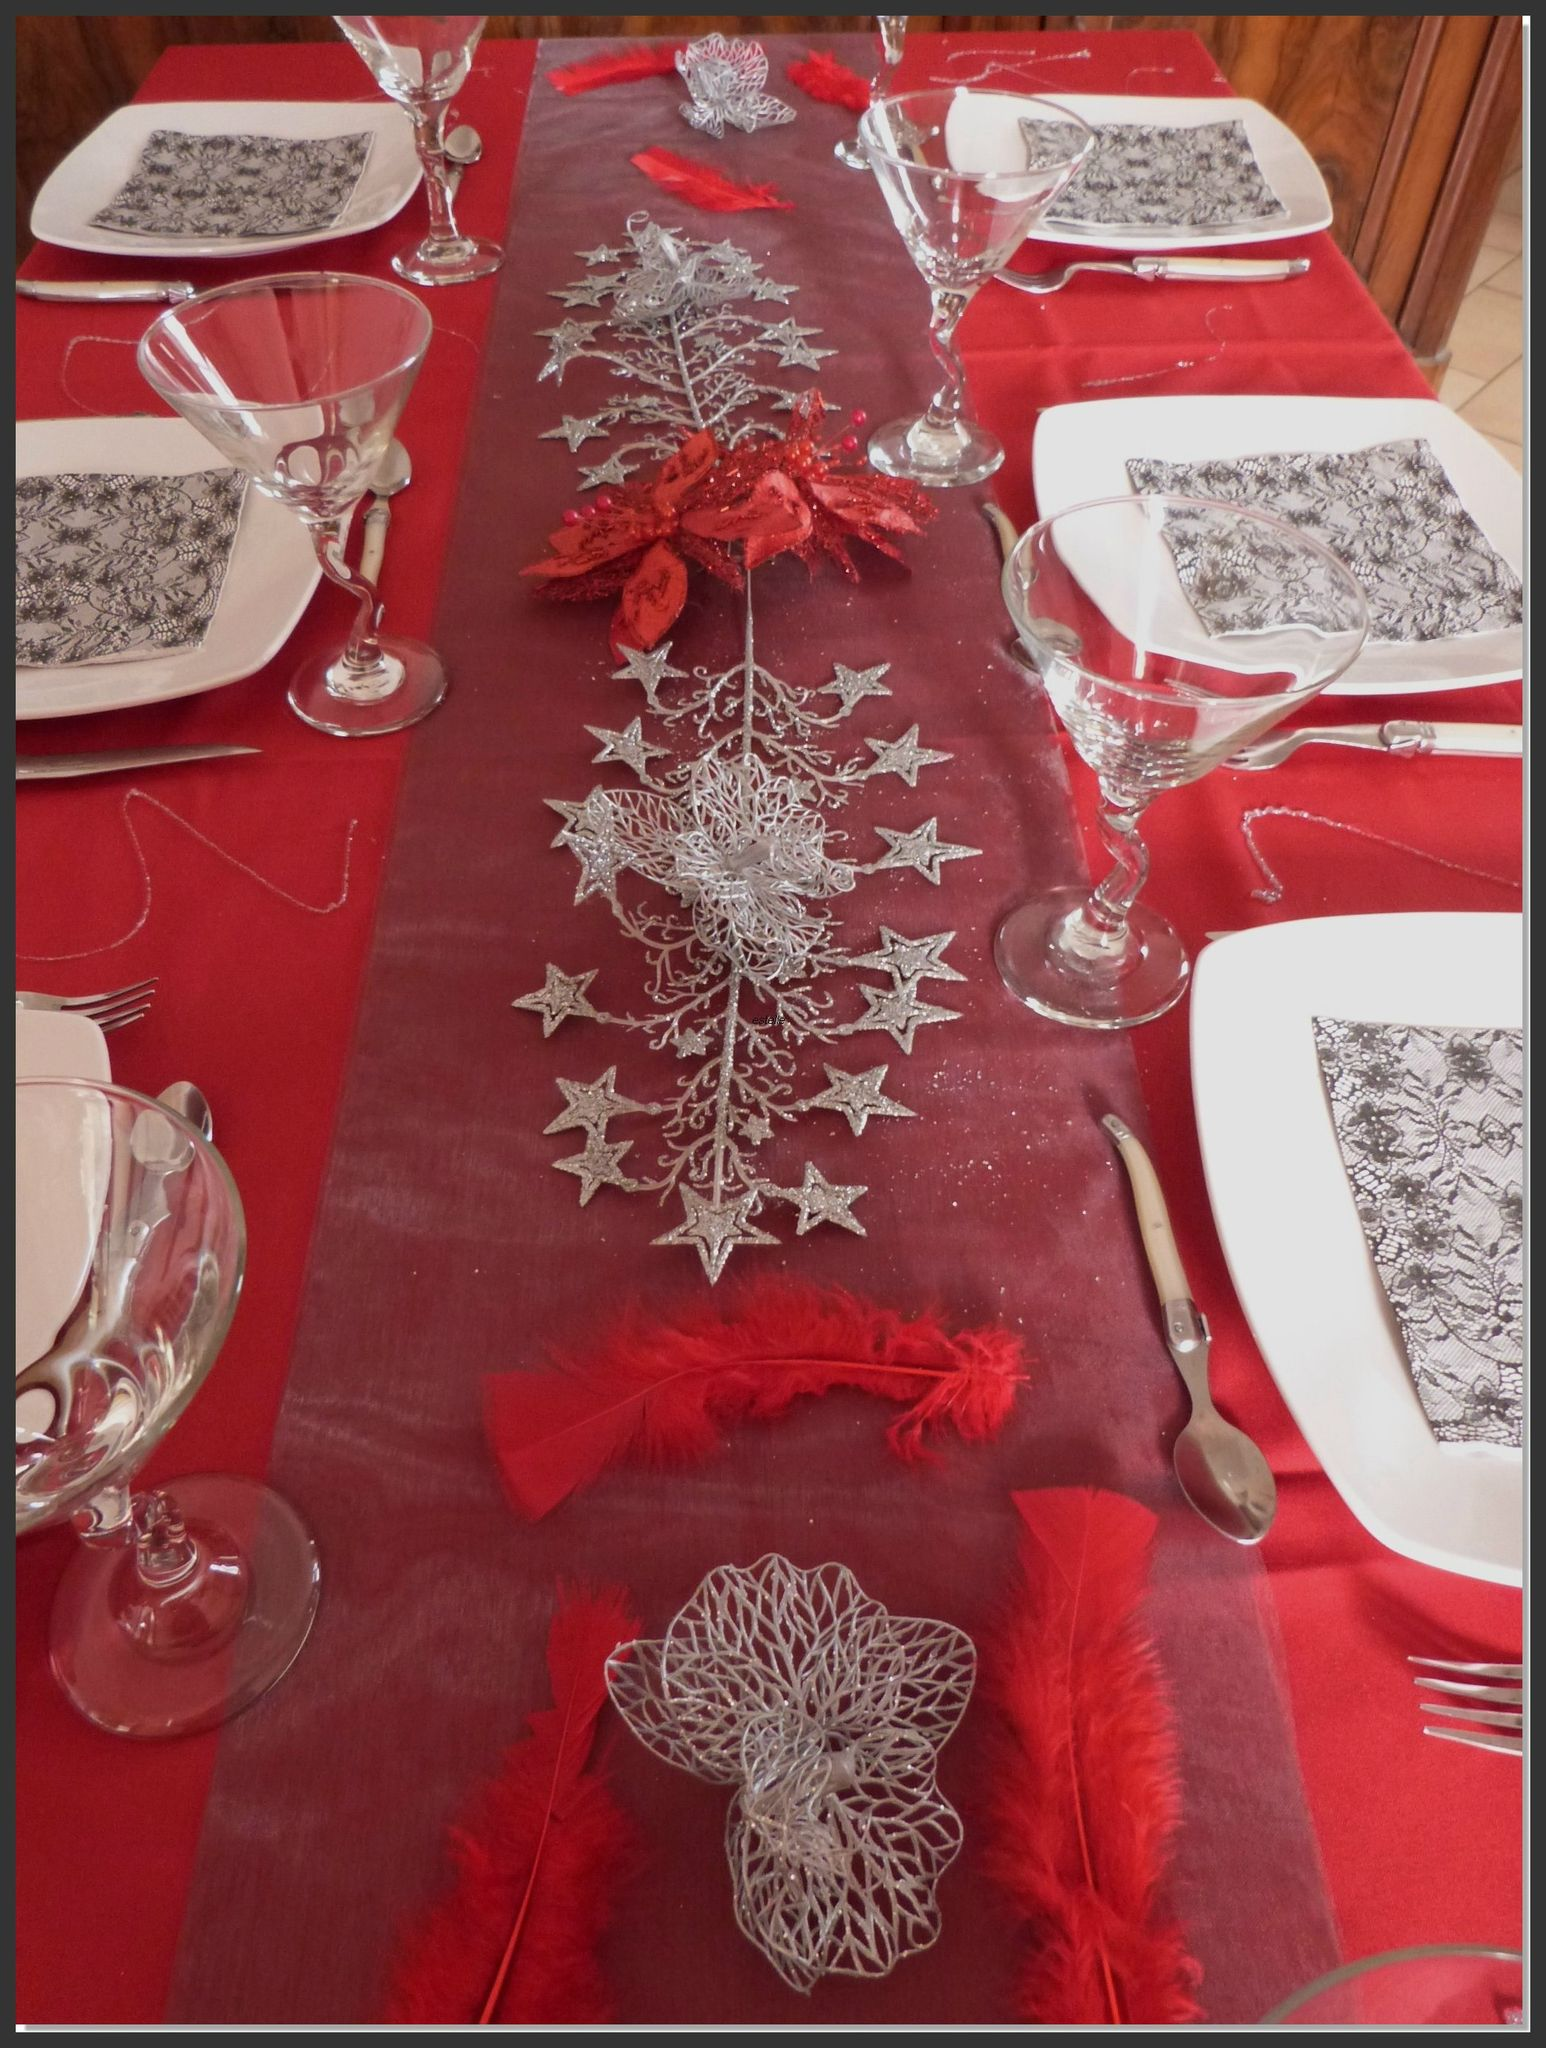 Table de no l en rouge et gris tables et d co d 39 estelle for Nappe et serviettes de table